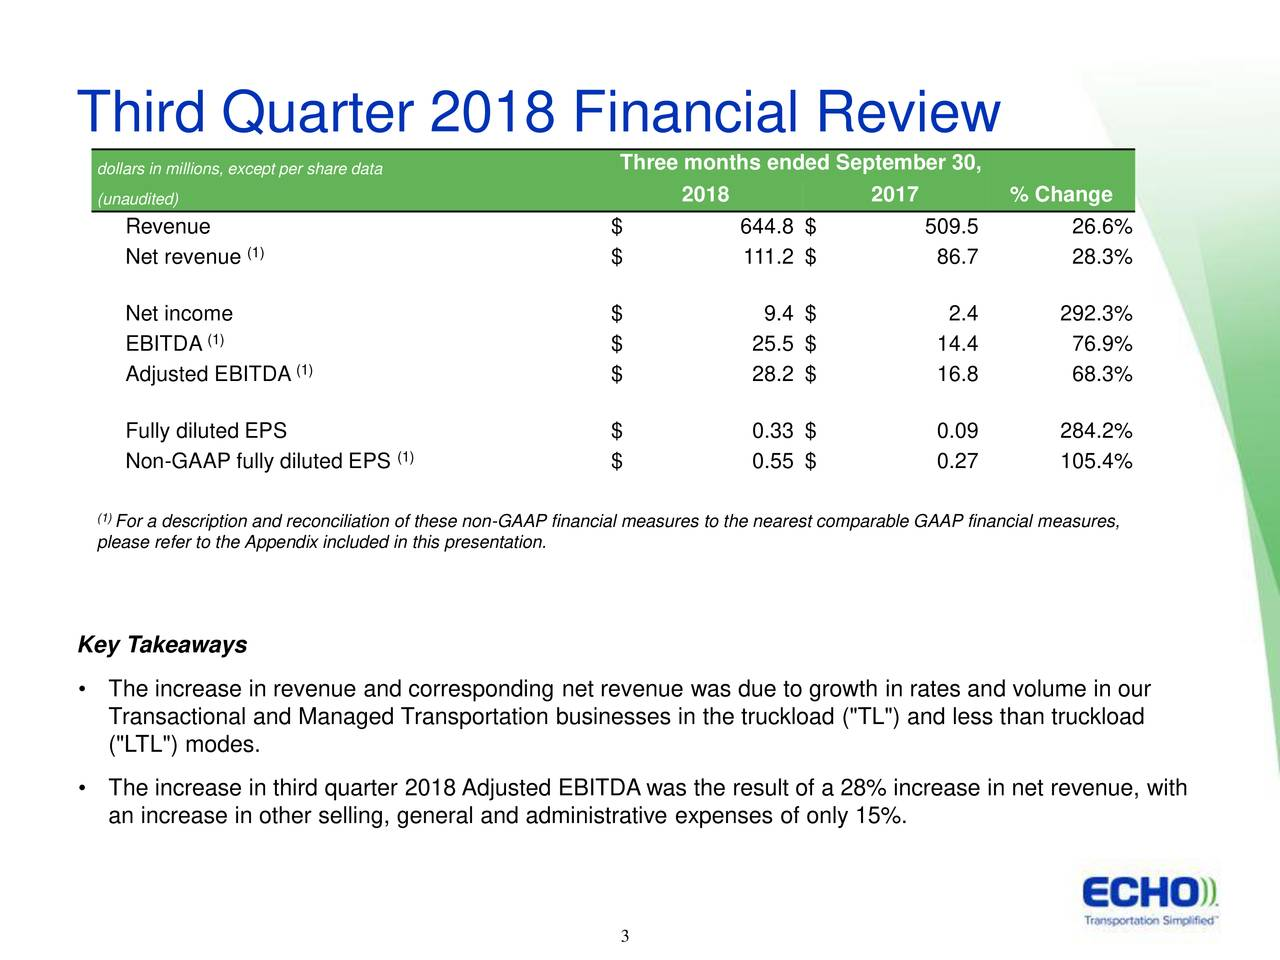 """dollars in millions, except per share data Three months ended September 30, (unaudited) 2018 2017 % Change Revenue $ 644.8 $ 509.5 26.6% (1) Net revenue $ 111.2 $ 86.7 28.3% Net income $ 9.4 $ 2.4 292.3% (1) EBITDA $ 25.5 $ 14.4 76.9% Adjusted EBITDA (1) $ 28.2 $ 16.8 68.3% Fully diluted EPS $ 0.33 $ 0.09 284.2% Non-GAAP fully diluted EPS (1) $ 0.55 $ 0.27 105.4% (1For a description and reconciliation of these non-GAAP financial measures to the nearest comparable GAAP financial measures, please refer to the Appendix included in this presentation. Key Takeaways • The increase in revenue and corresponding net revenue was due to growth in rates and volume in our Transactional and Managed Transportation businesses in the truckload (""""TL"""") and less than truckload (""""LTL"""") modes. • The increase in third quarter 2018 Adjusted EBITDA was the result of a 28% increase in net revenue, with an increase in other selling, general and administrative expenses of only 15%. 3 3"""